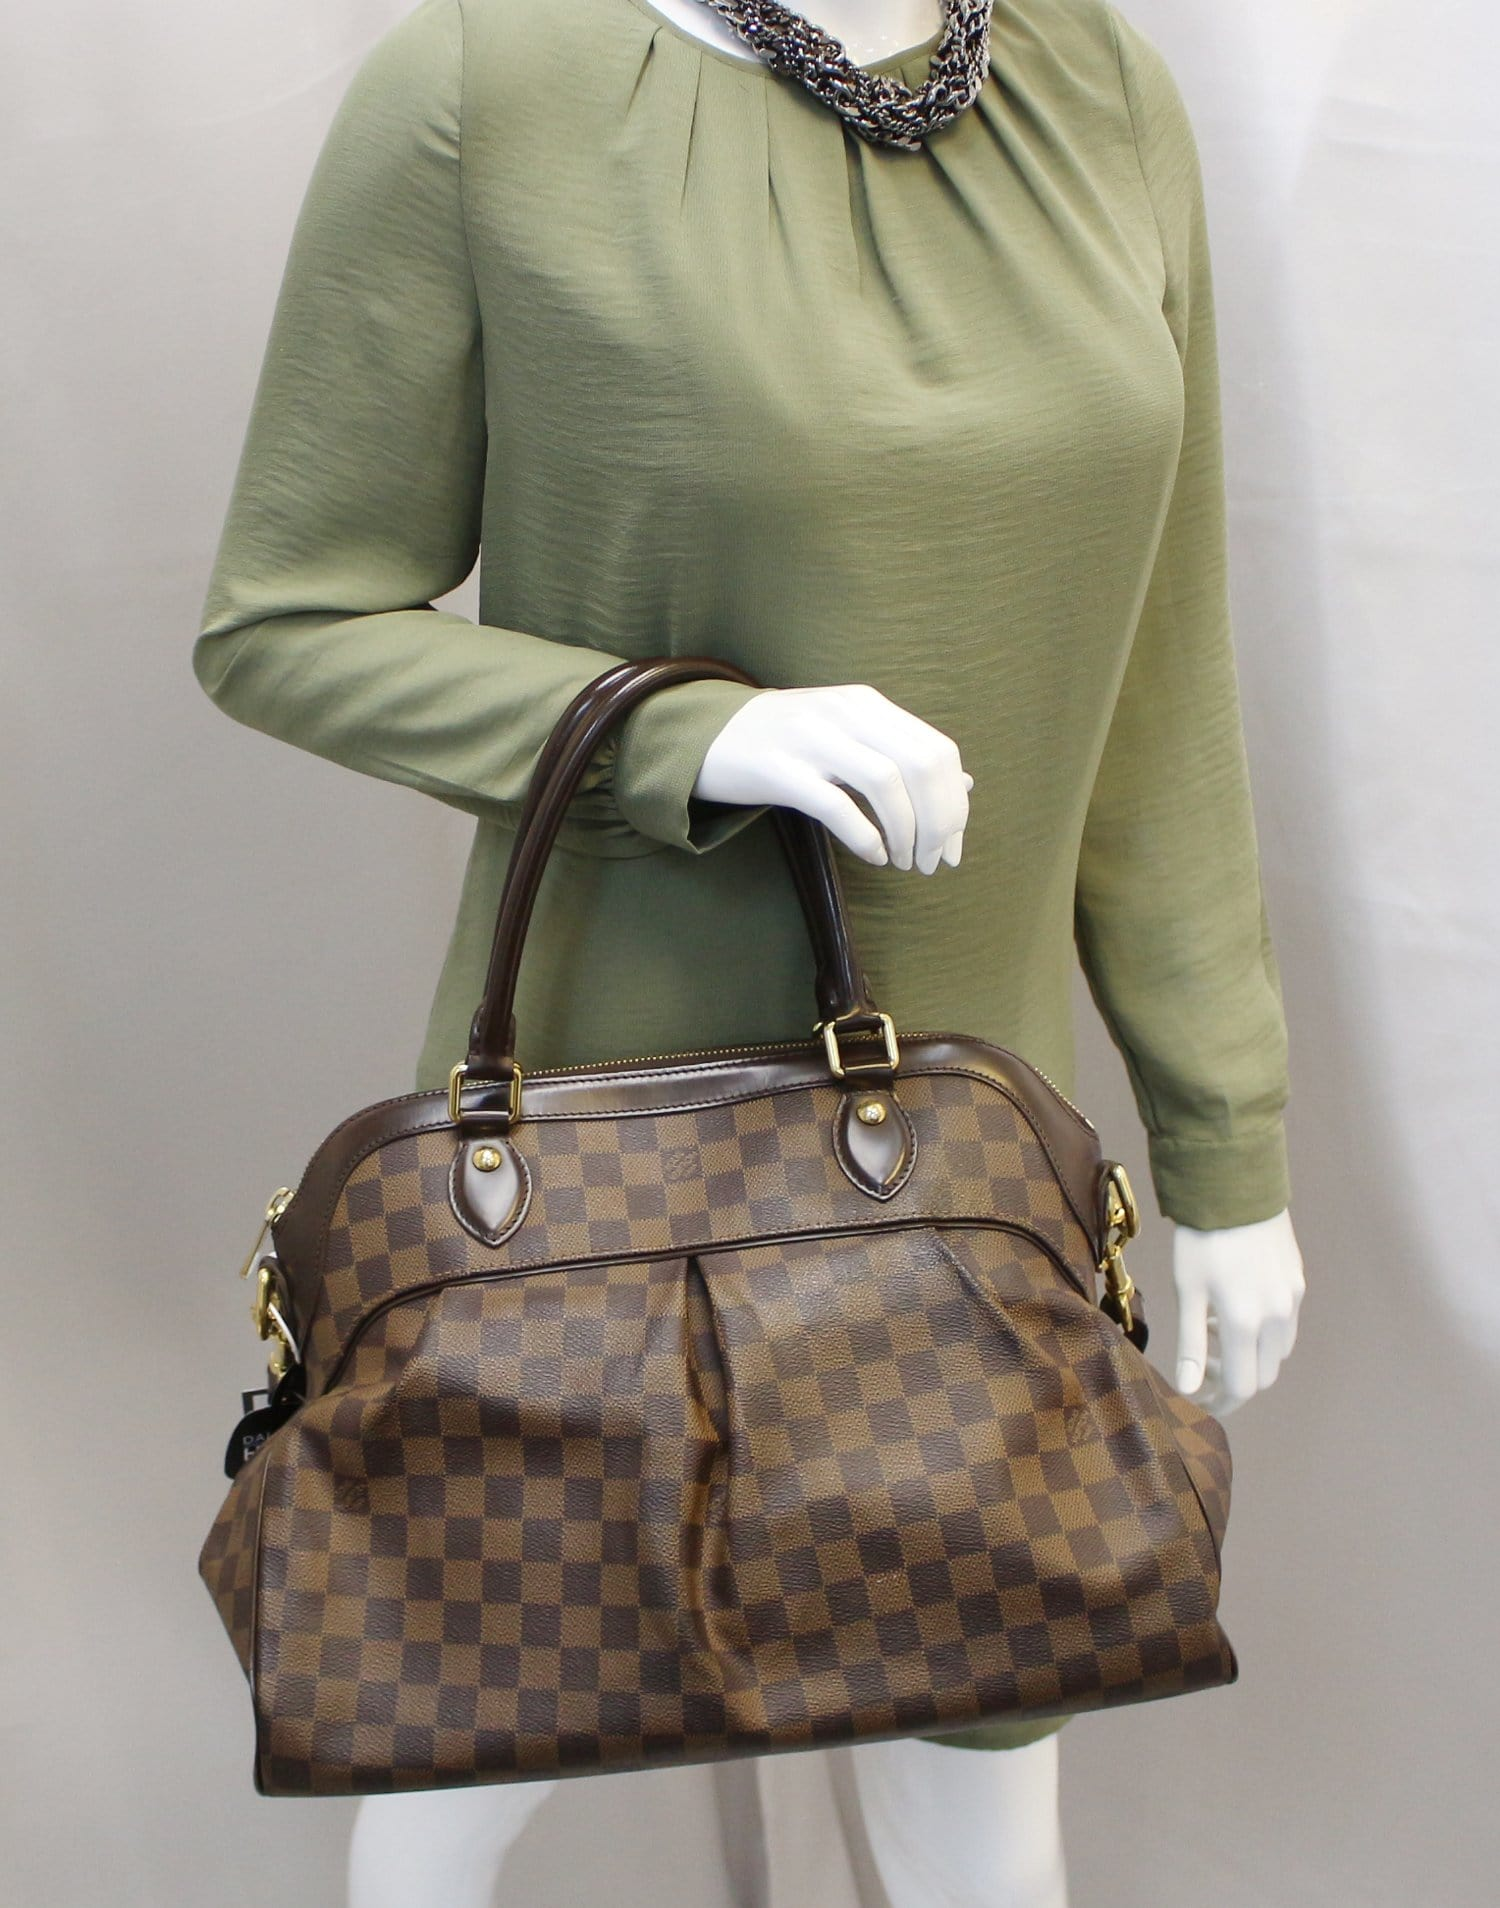 cce877e8e50c LOUIS VUITTON Damier Ebene Trevi GM Brown Shoulder Bag TT2216 ...